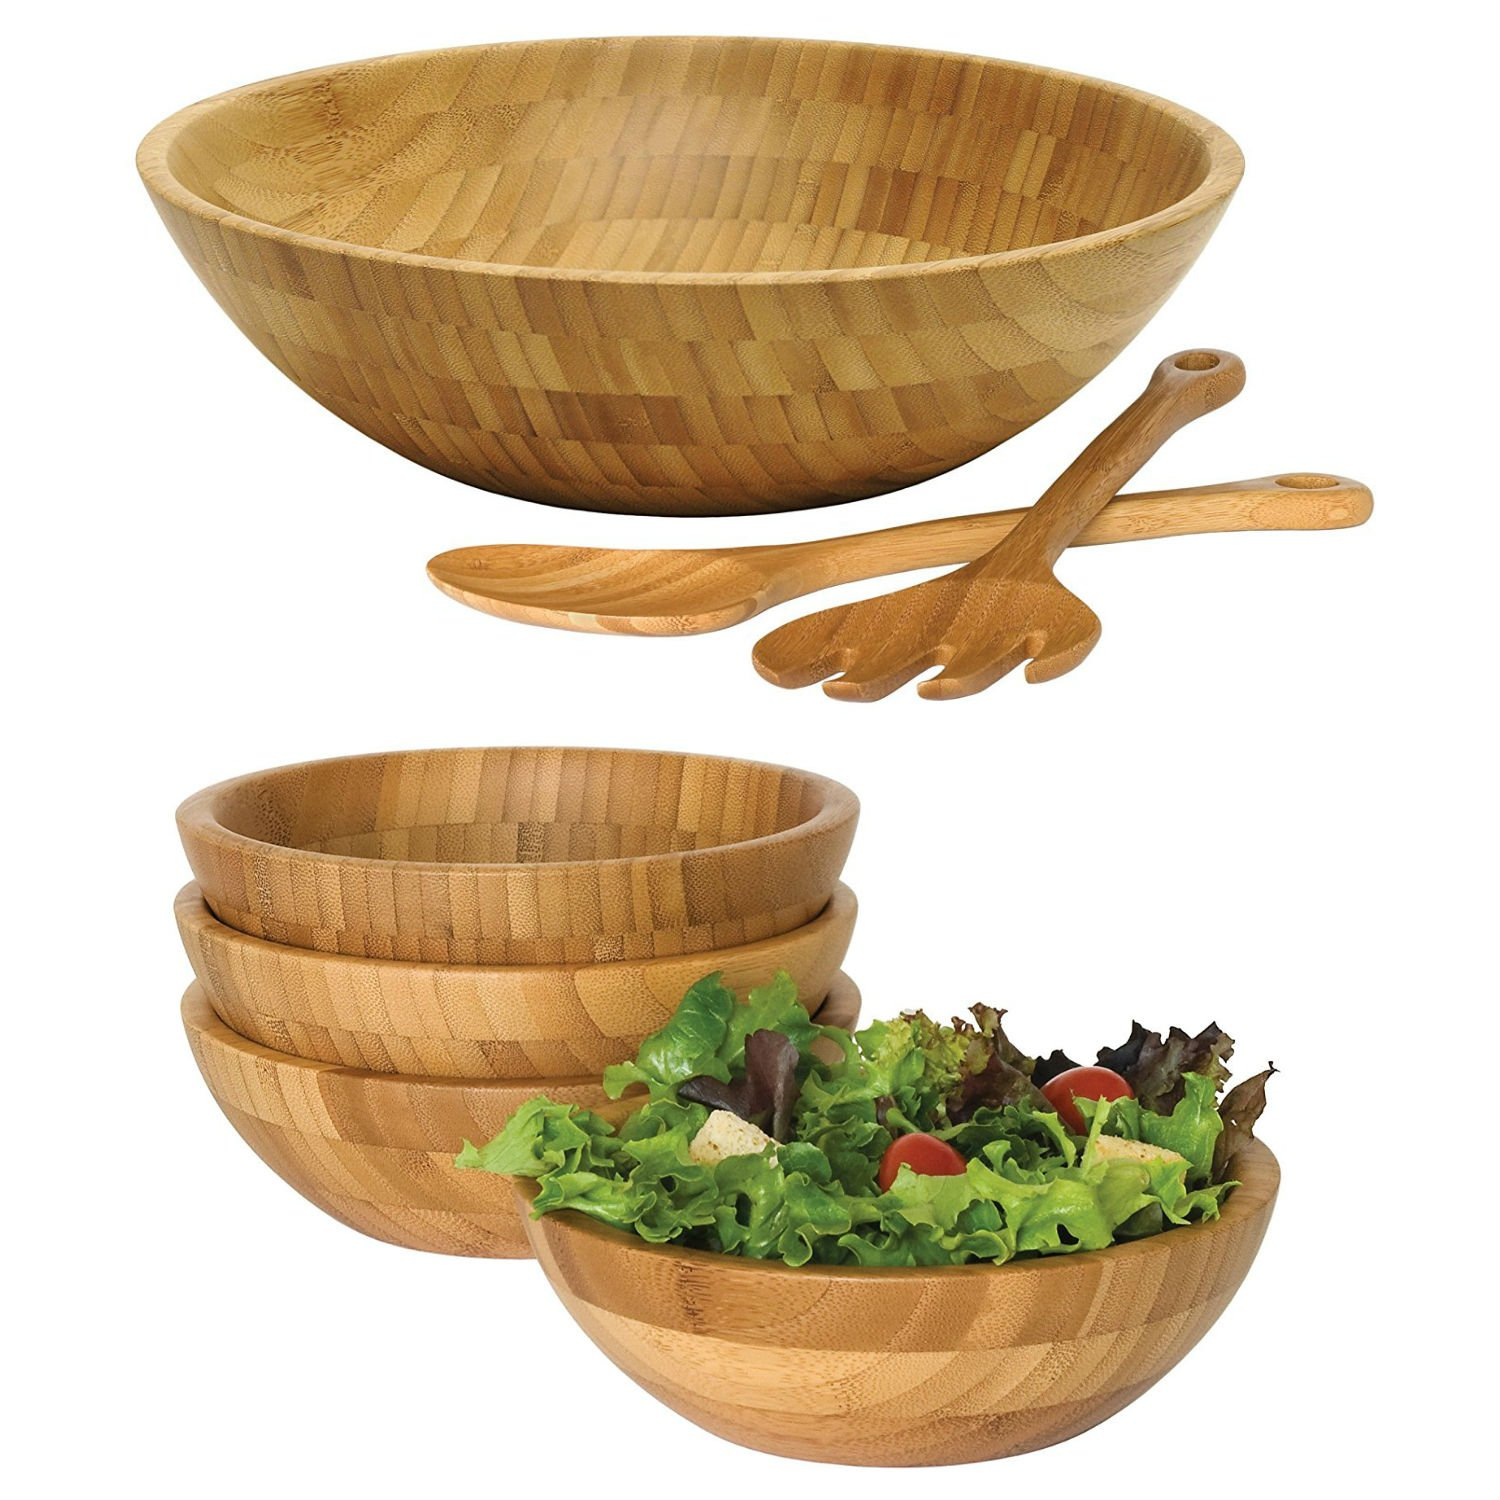 Set of Wooden Bamboo salad bowls, with serving hands and serving bowls, Includes Set of 4 Small Bamboo Bowls, and Bamboo Salad Bowl with Salad Servers – Best for the bamboo salad bowl lovers